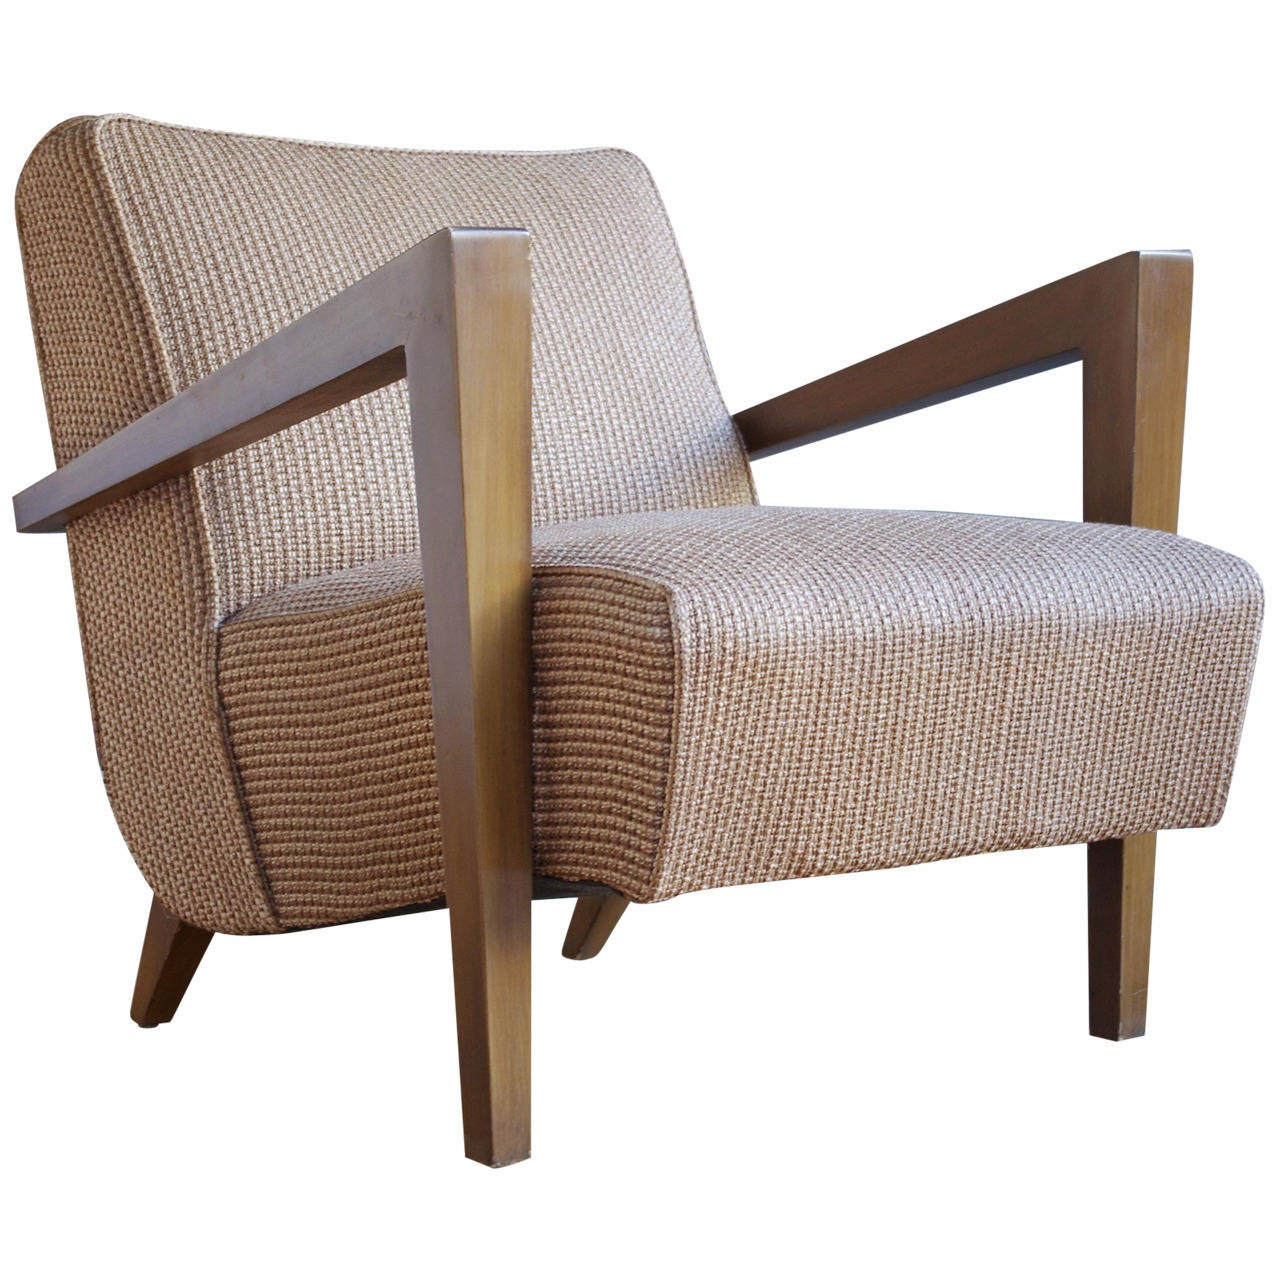 Mid Century Lounge Chair Sculptural Mid Century Modern Lounge Chair At 1stdibs